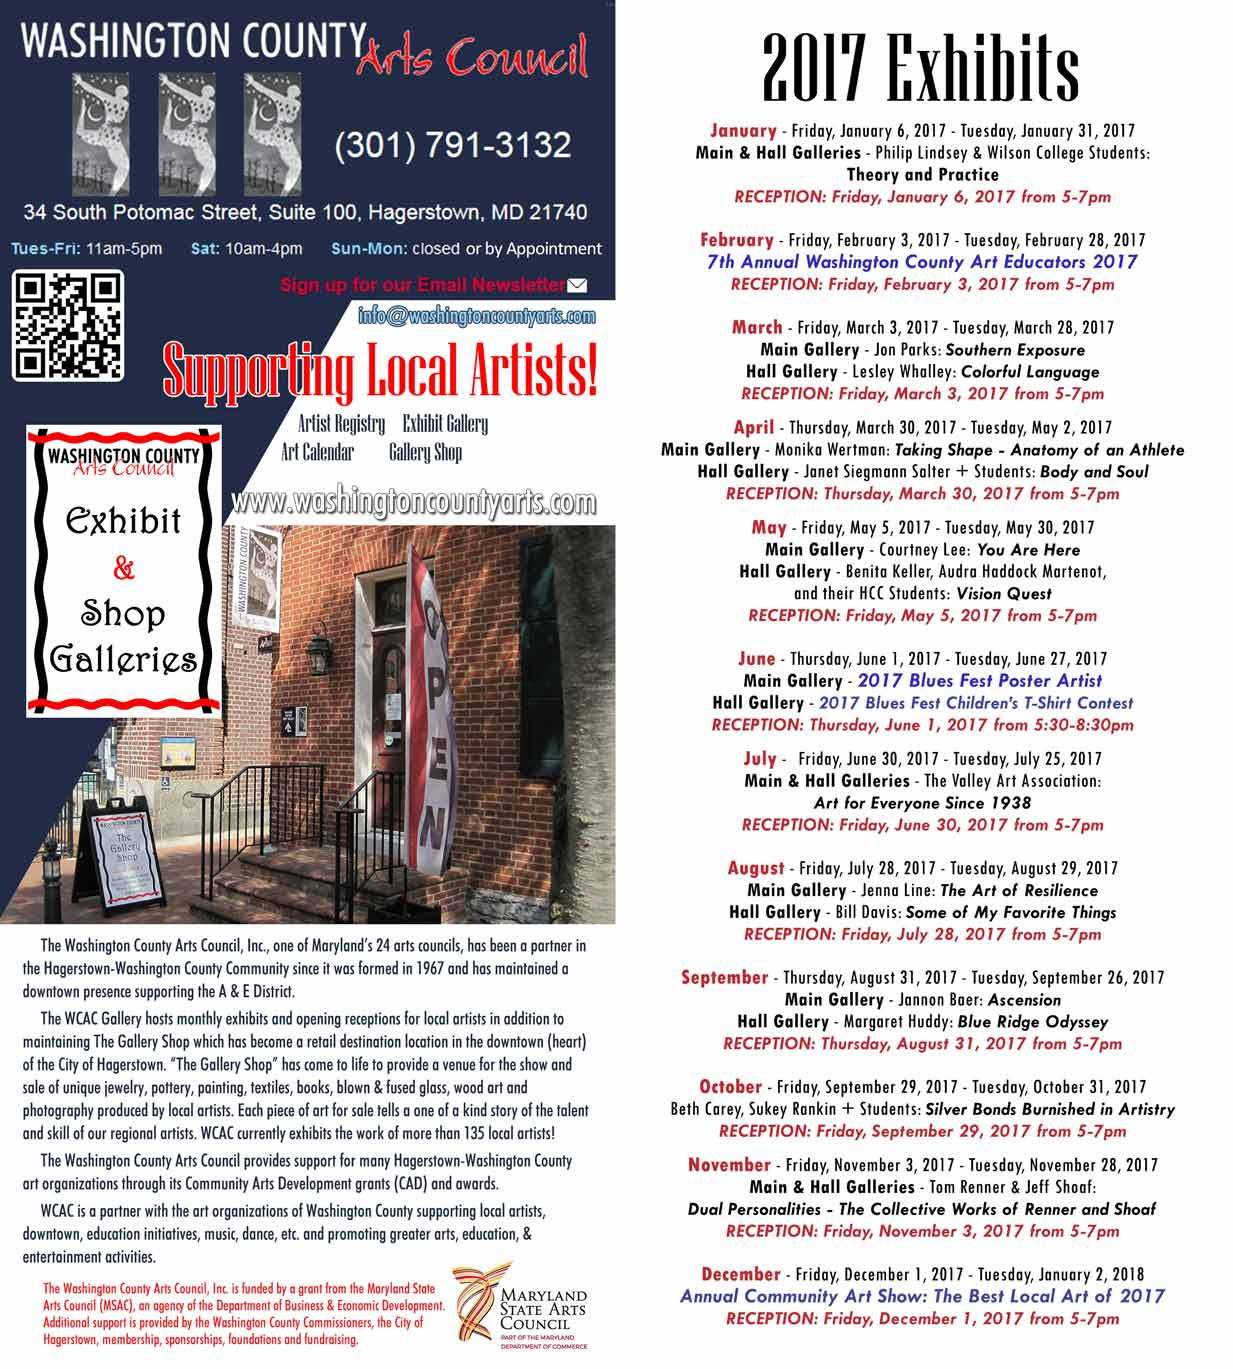 2017 Exhibits Schedule